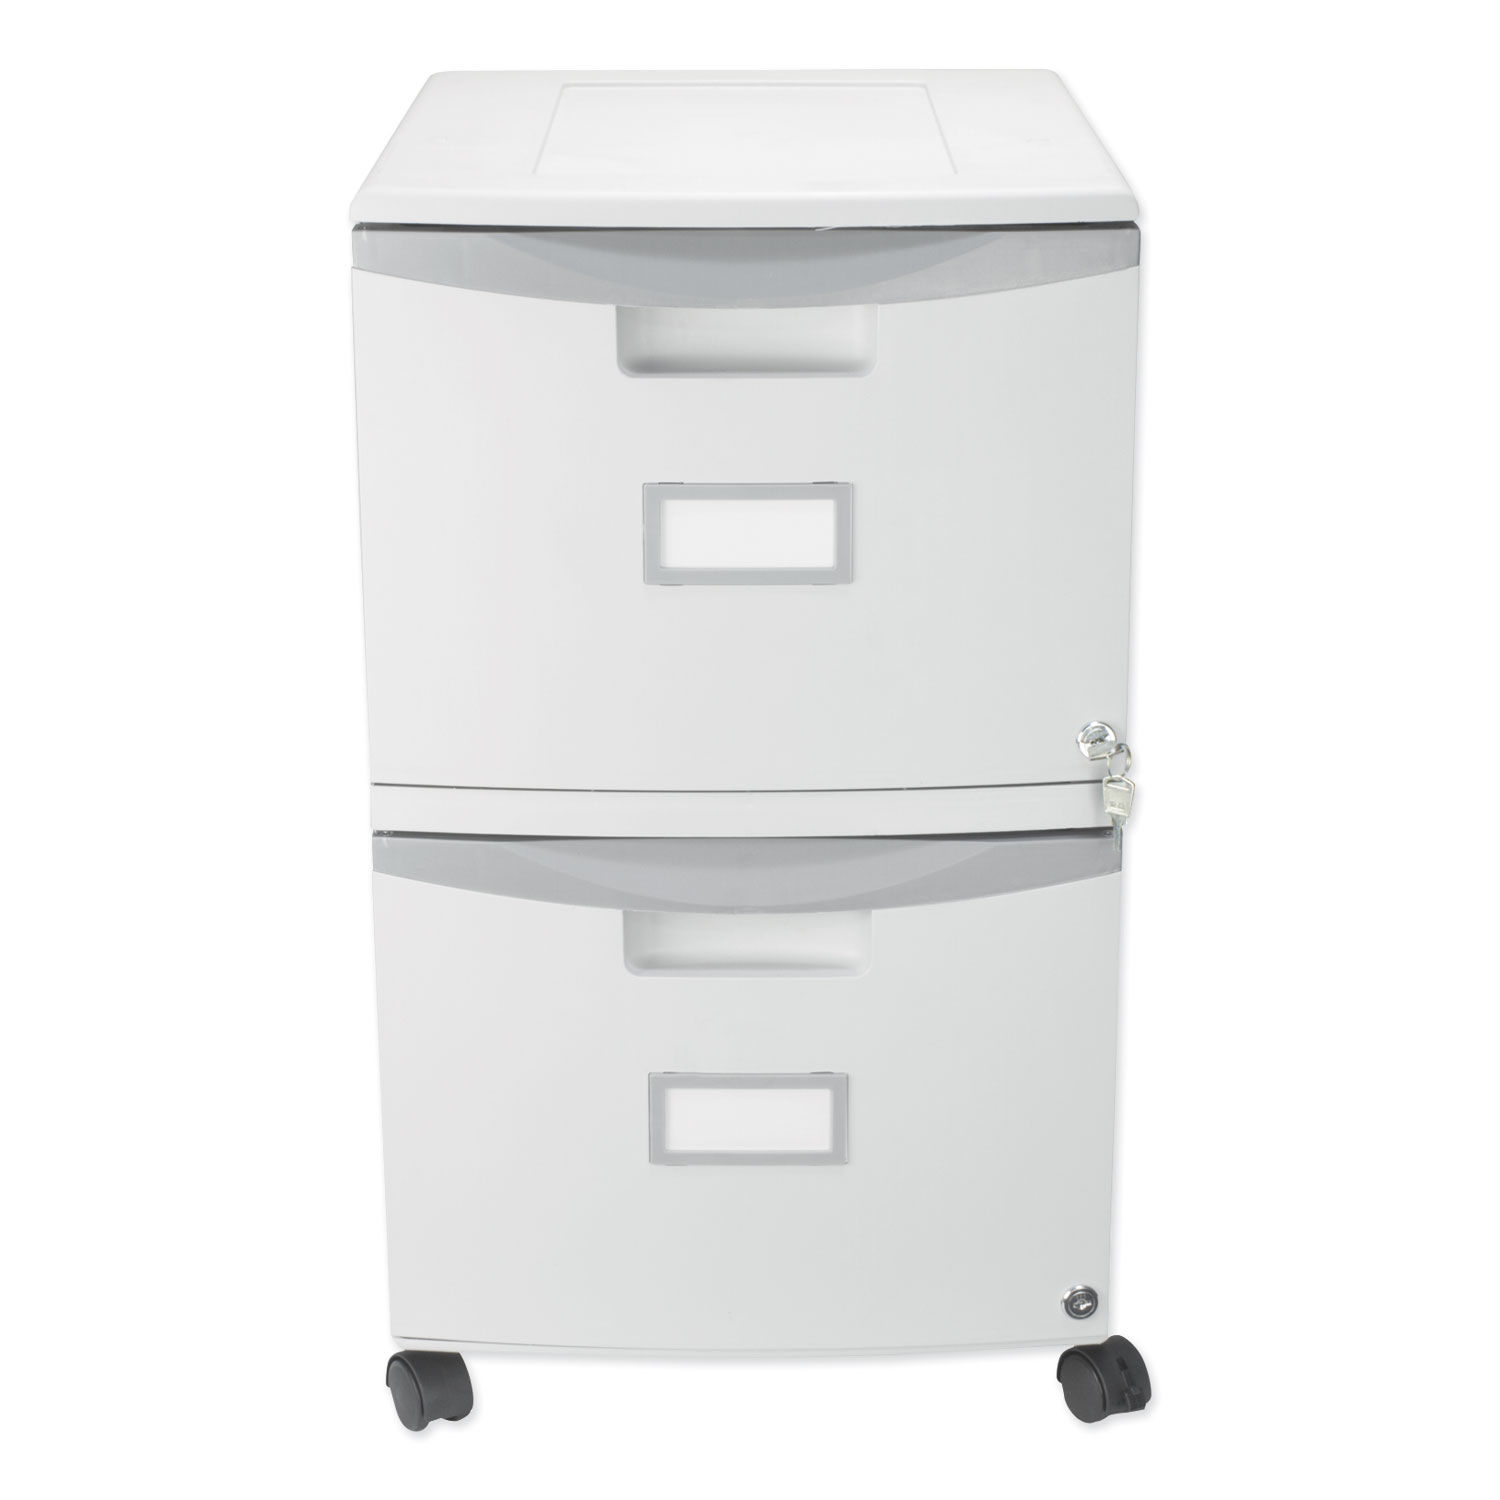 Two-Drawer Mobile Filing Cabinet, 355-35/35w x 35-35/35d x 35h, Gray